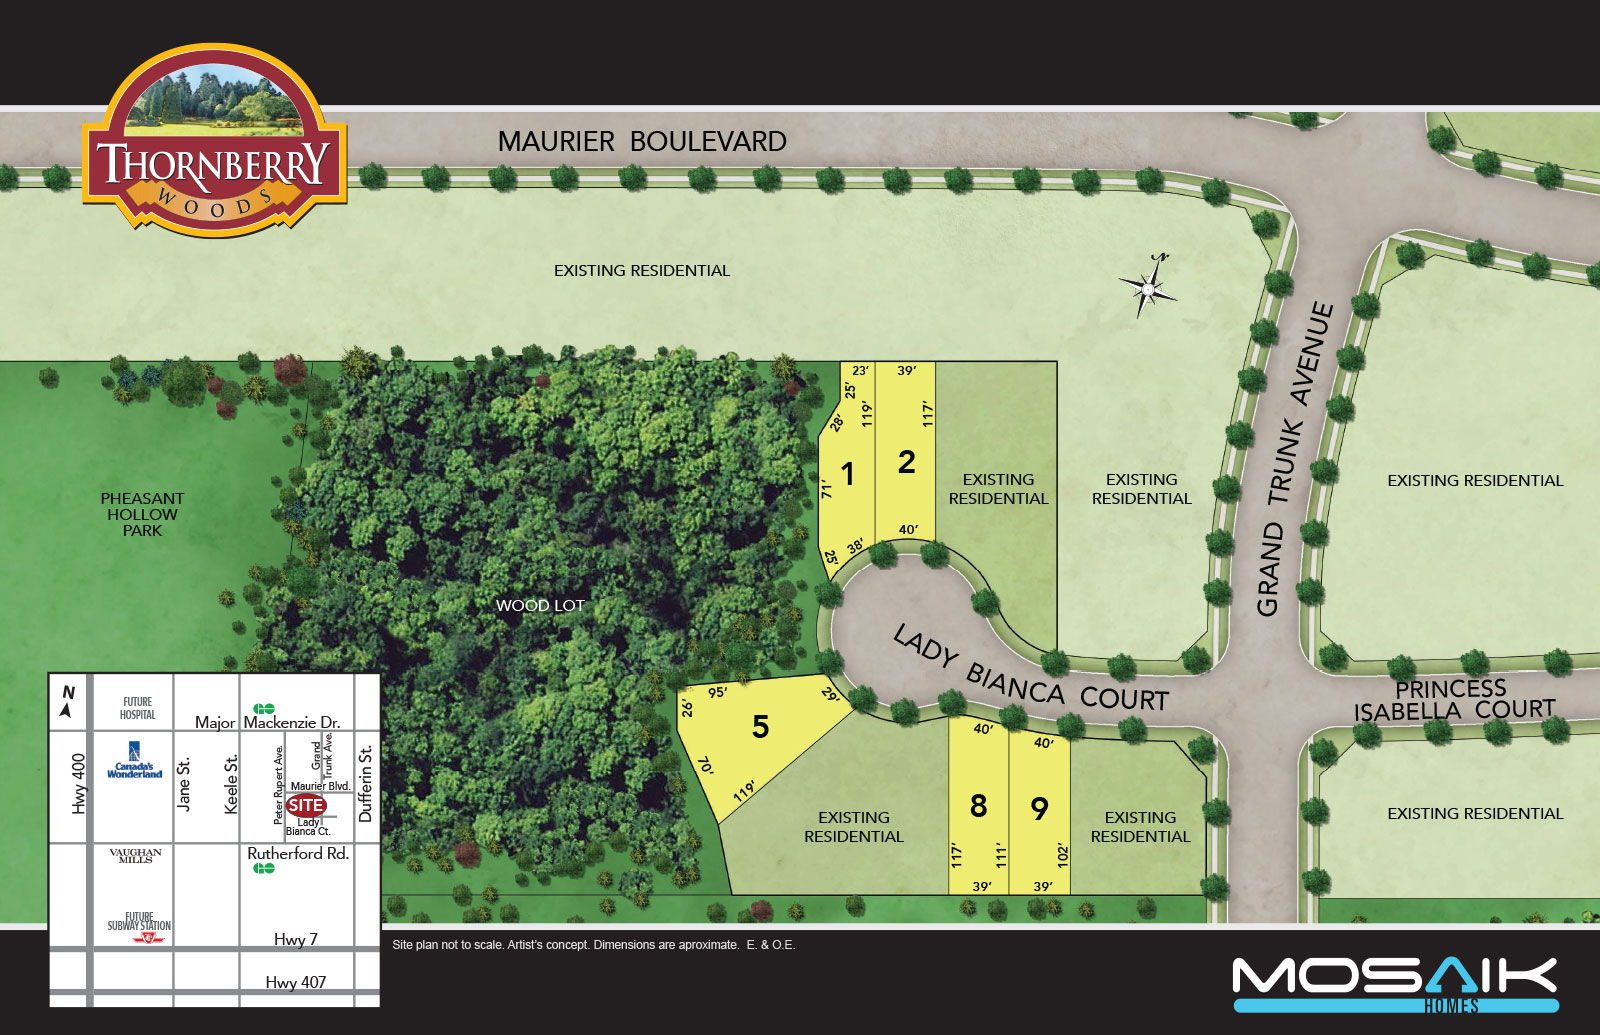 Site plan for Thornbury Woods in Maple, Ontario